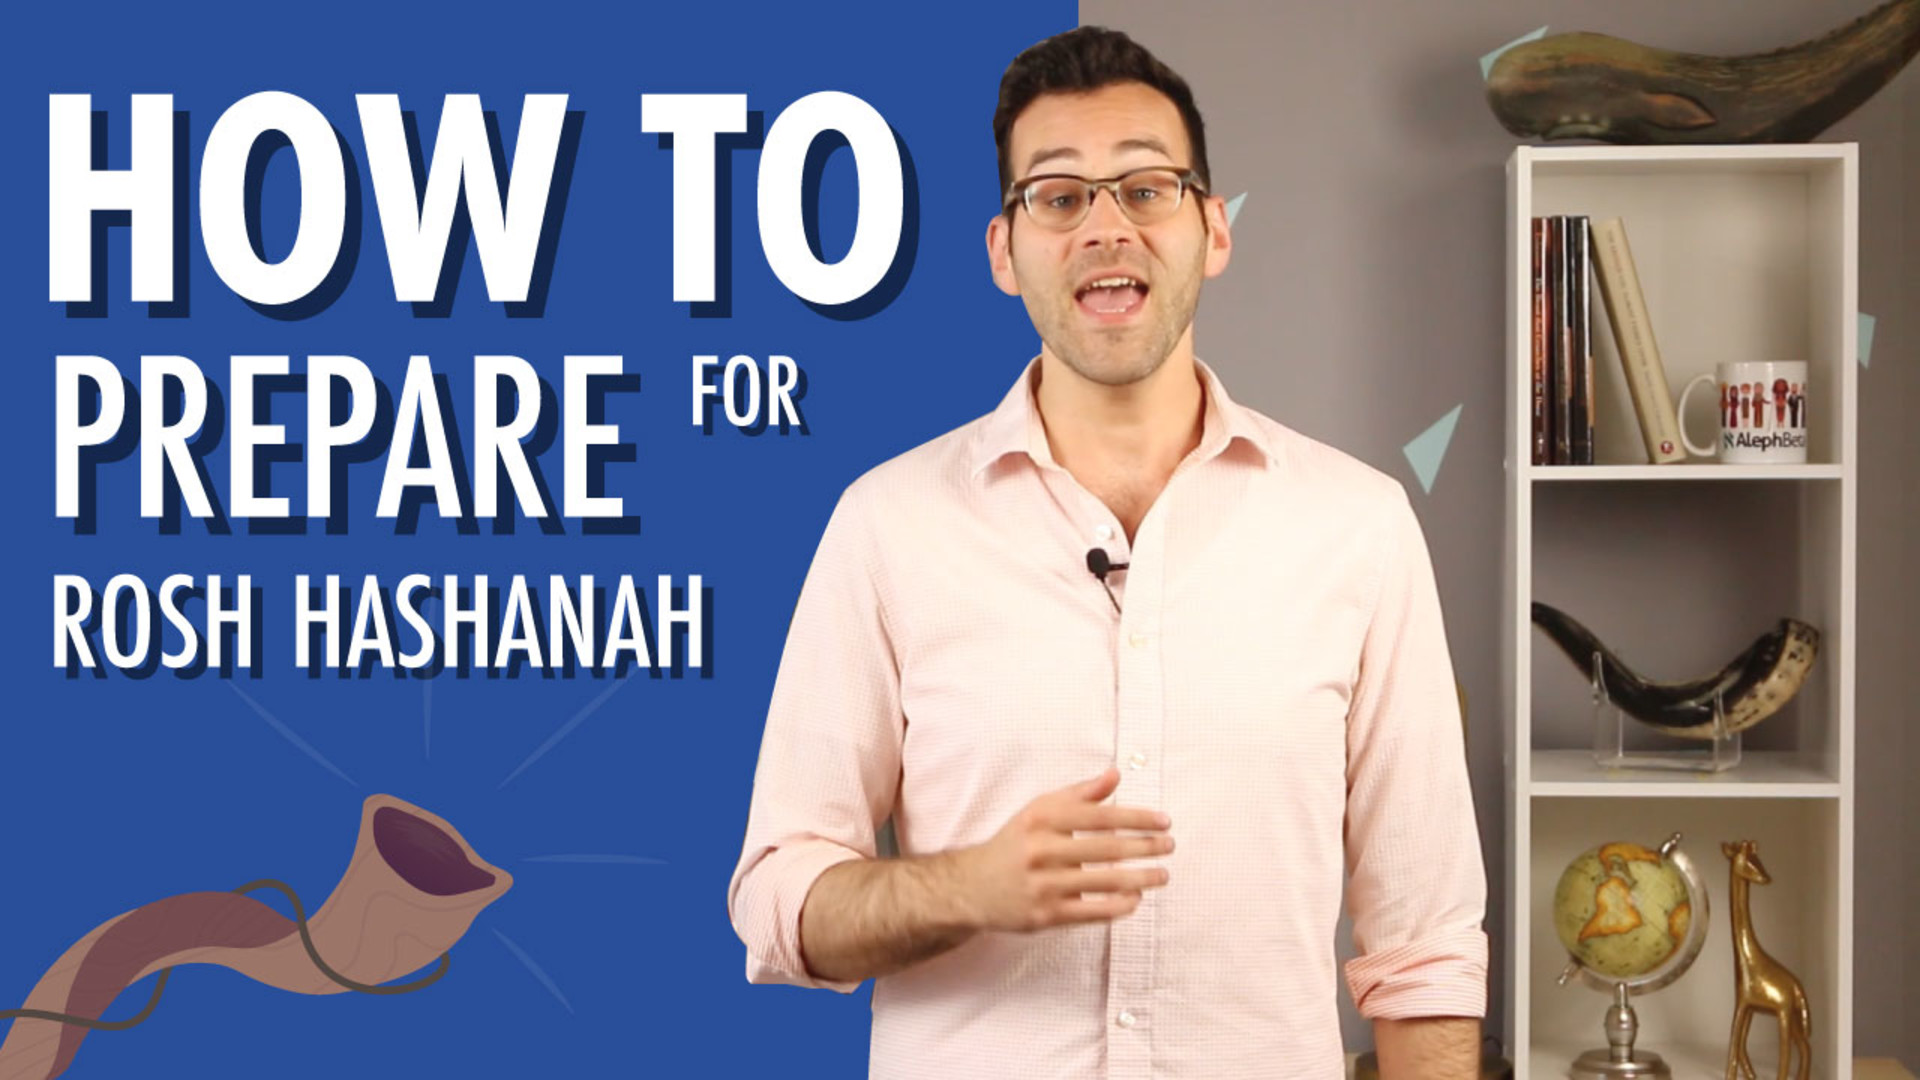 Why we celebrate Rosh Hashanah